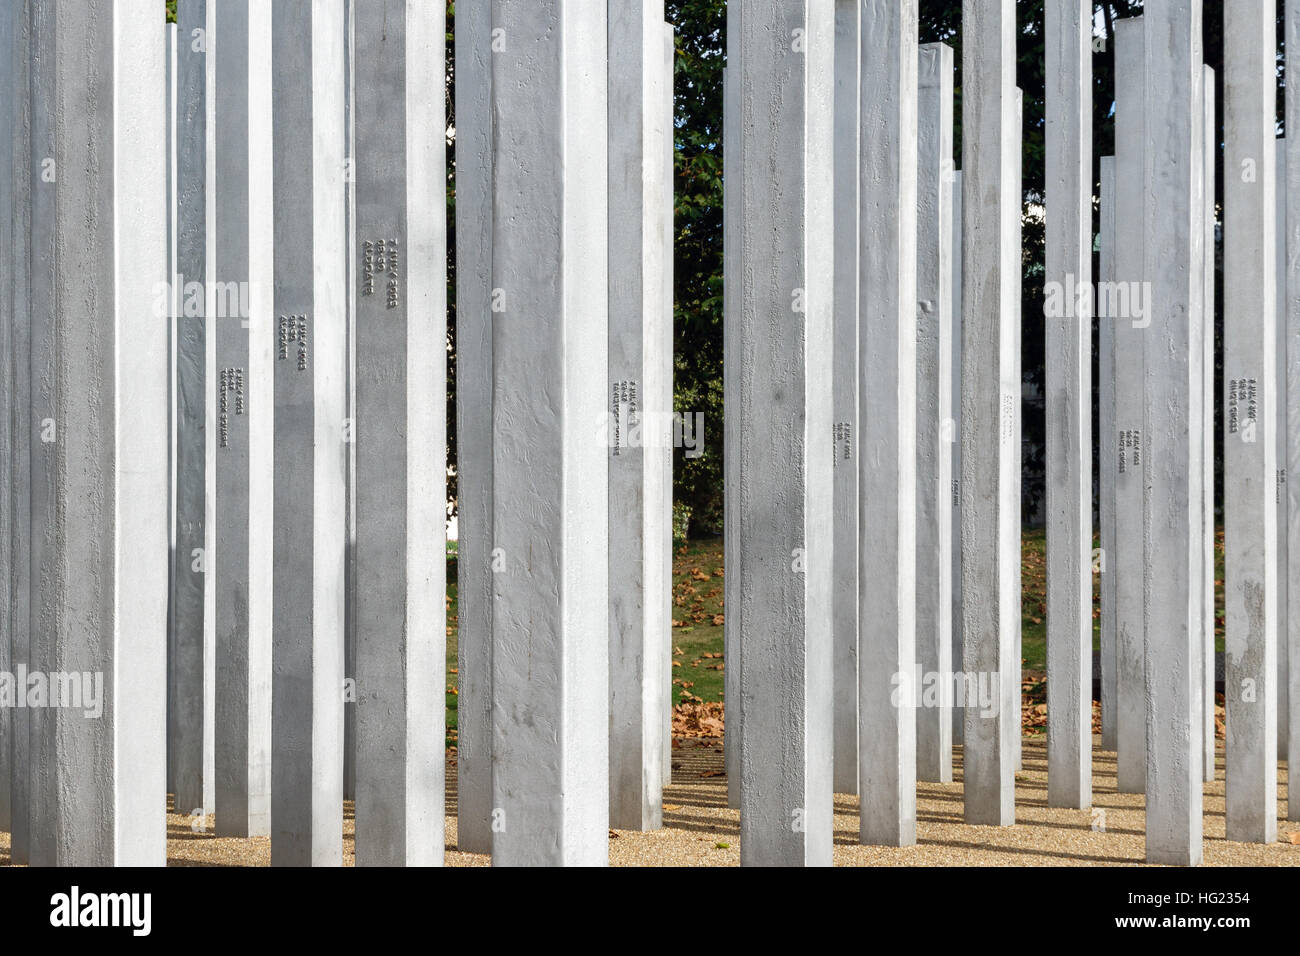 The Memorial in Hyde Park to honour the victims of the 7th July London Bombings - Stock Image